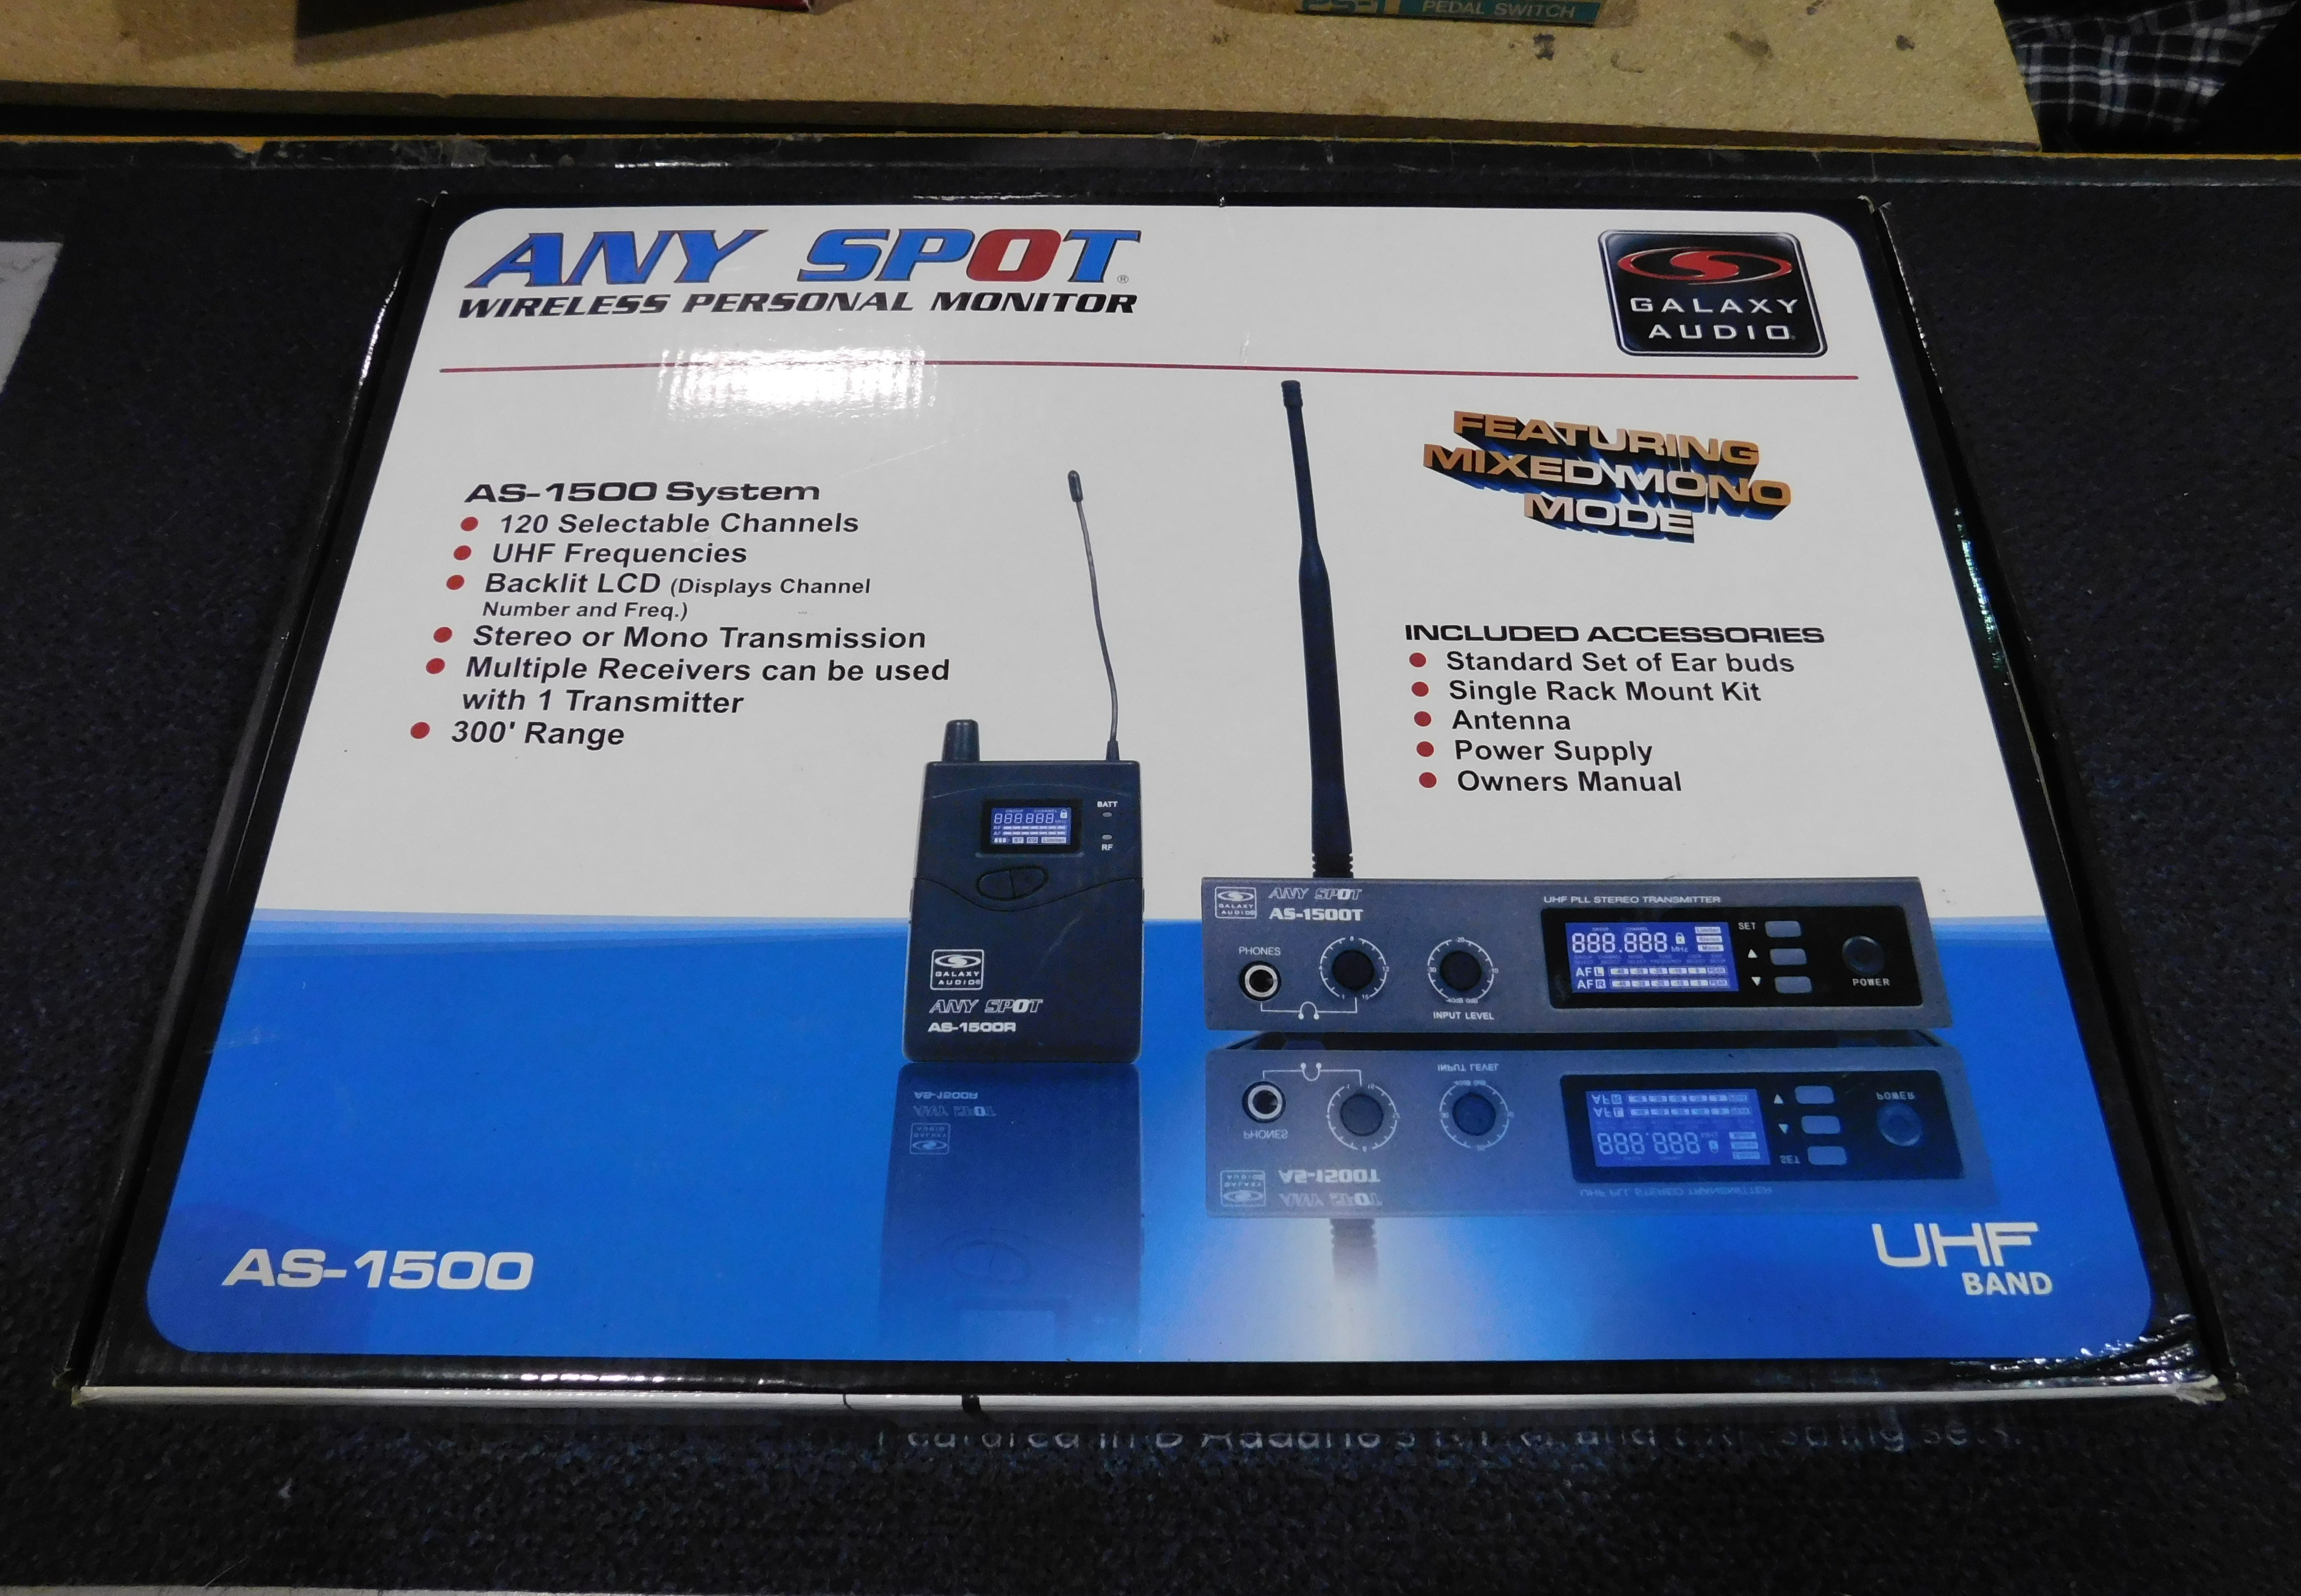 GALAXY AUDIO AS-1500 Personal Wireless In-Ear Monitor System